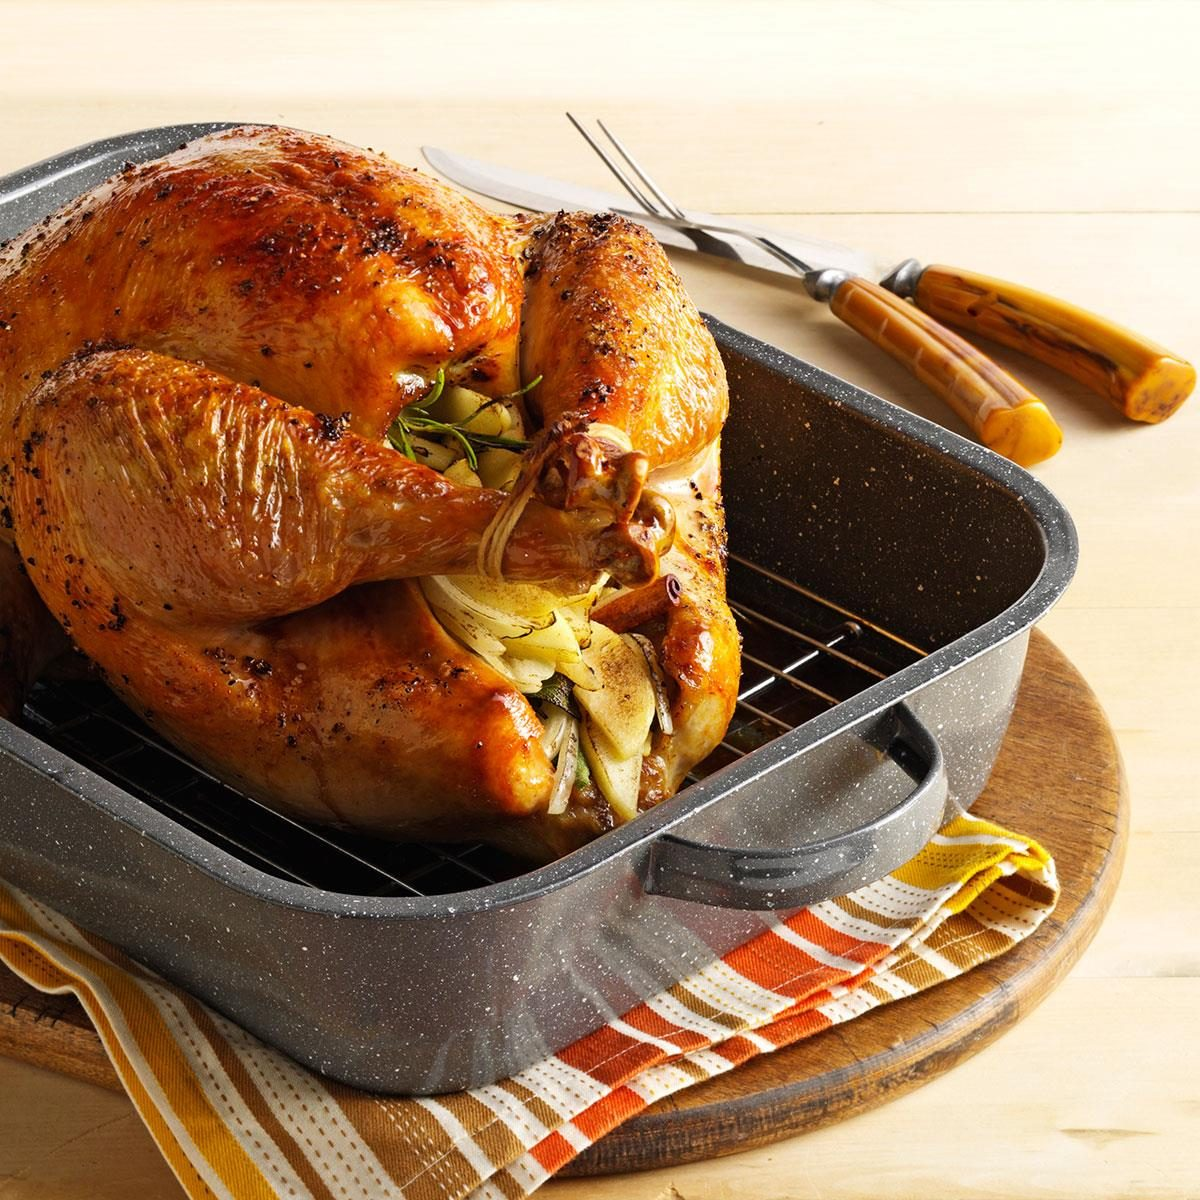 Turkey baked in oven